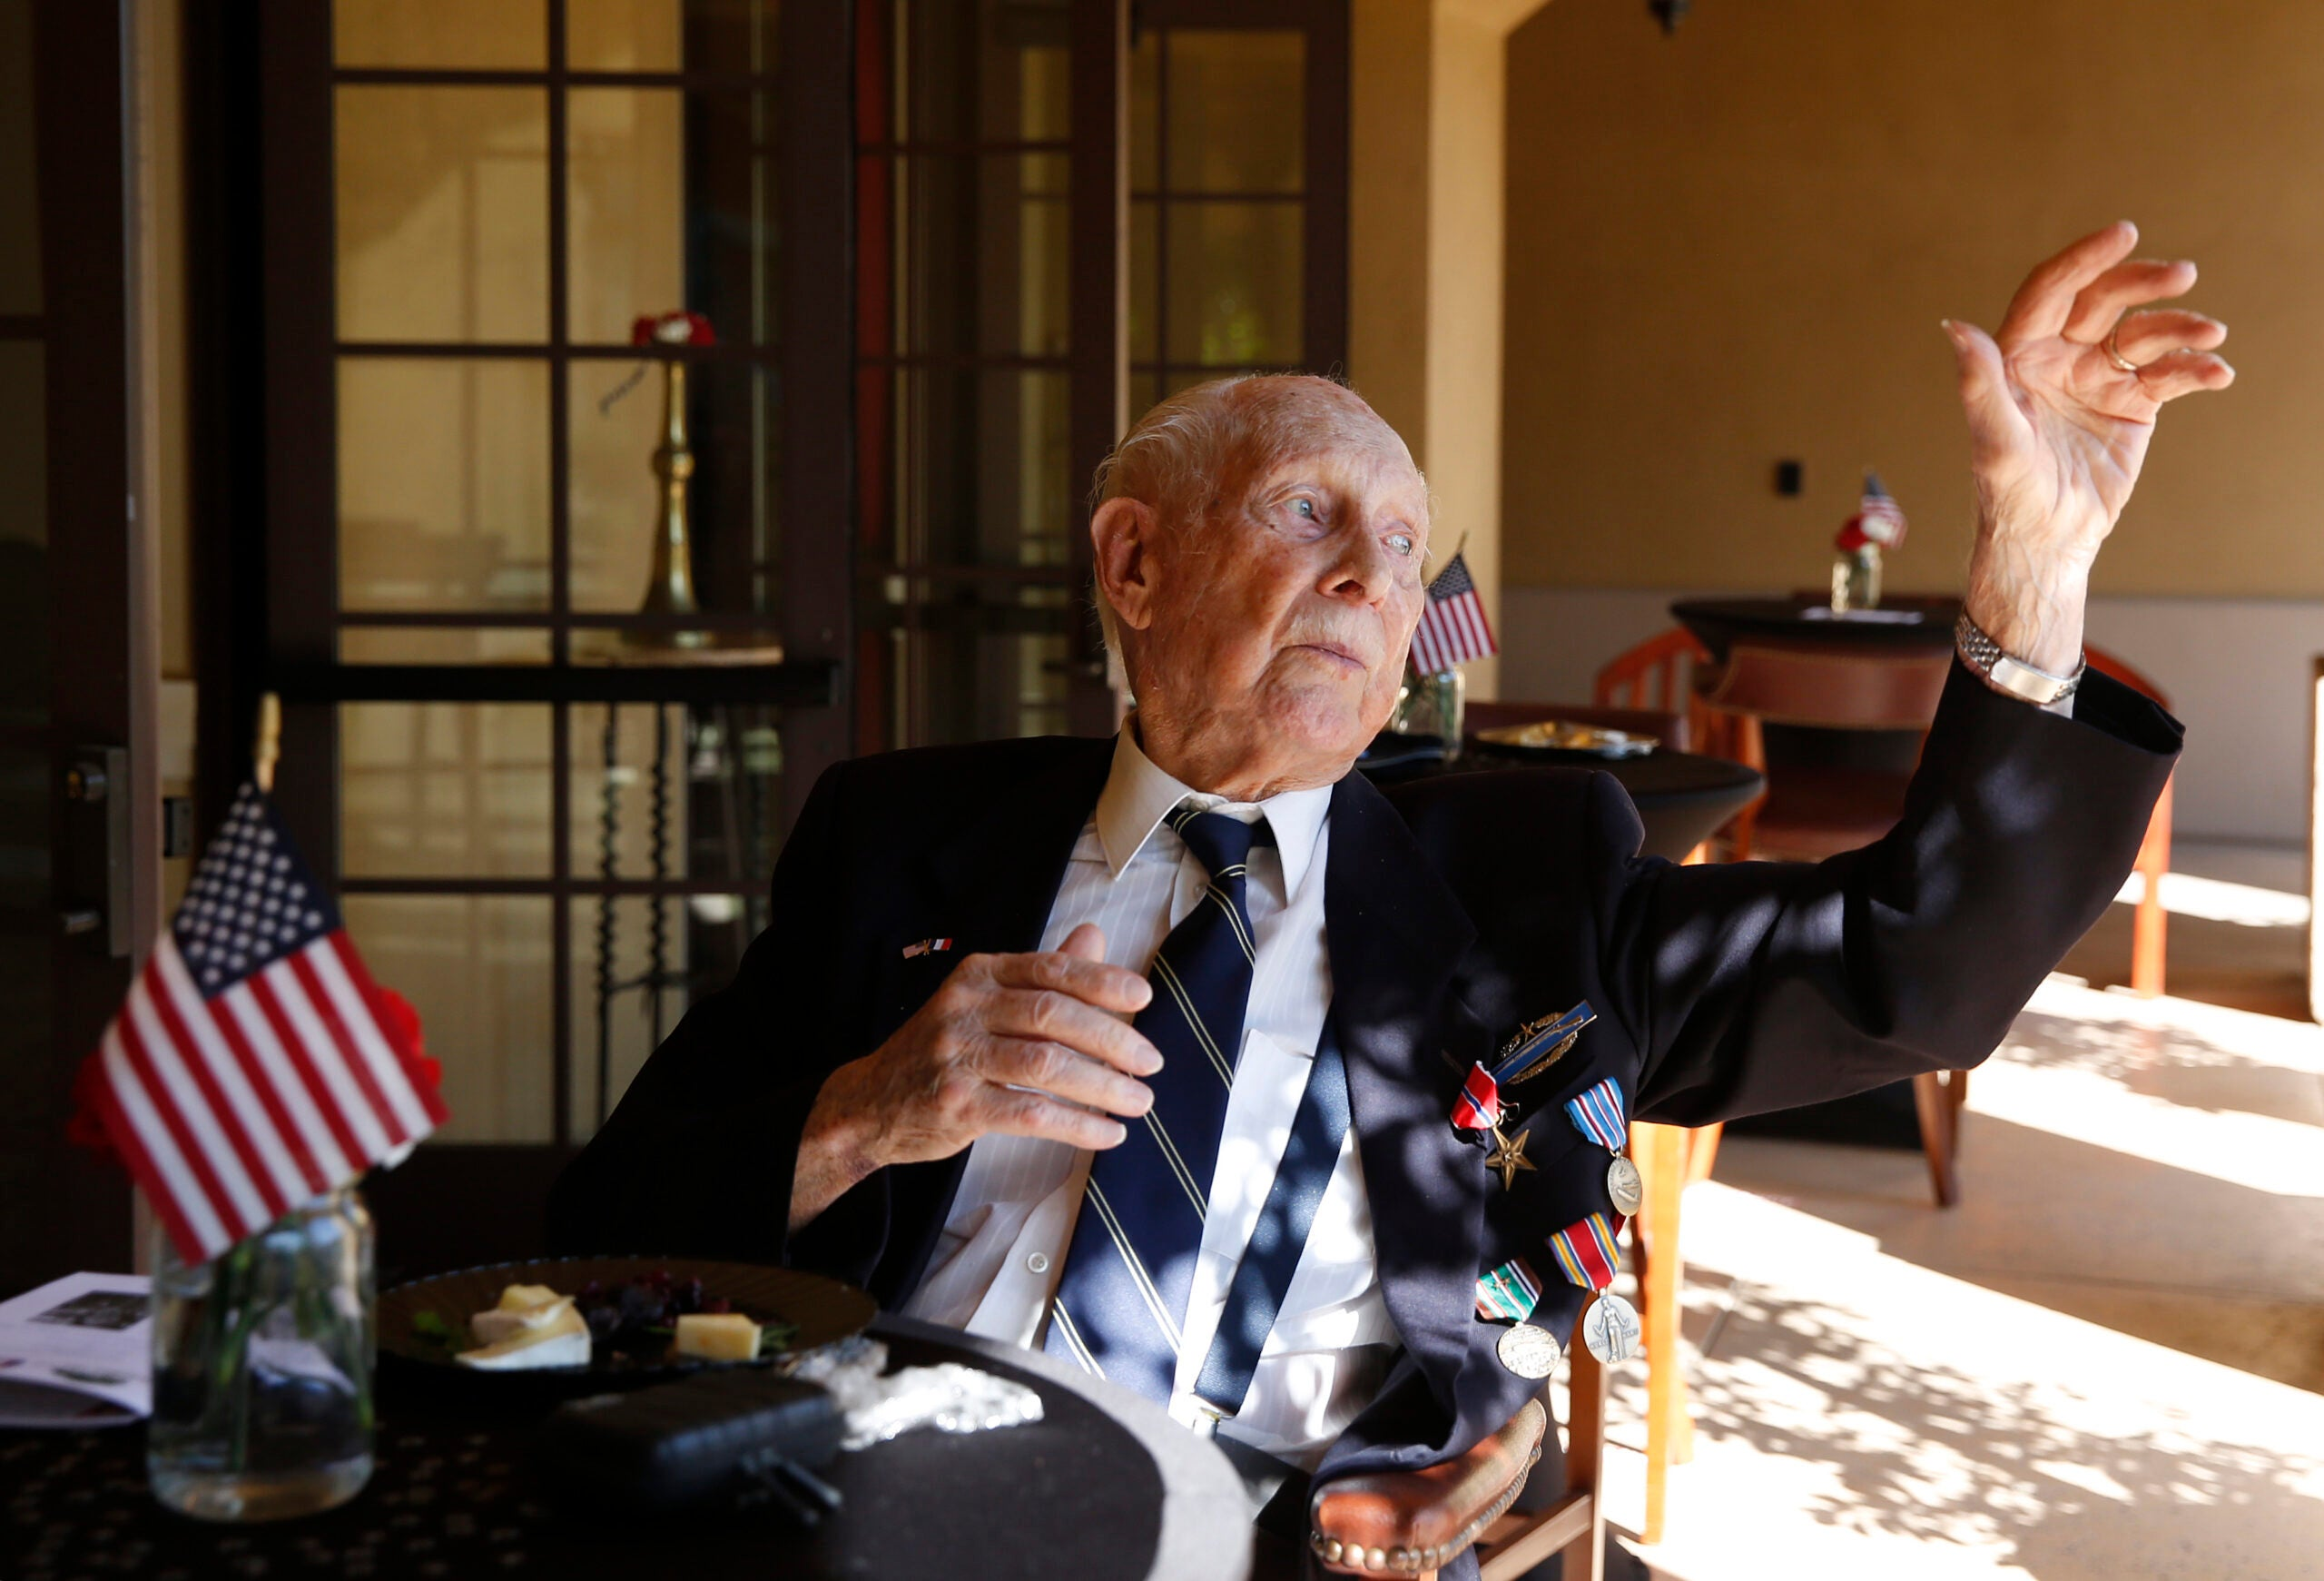 This WWII soldier survived 5 days behind enemy lines on nothing but chocolate bars